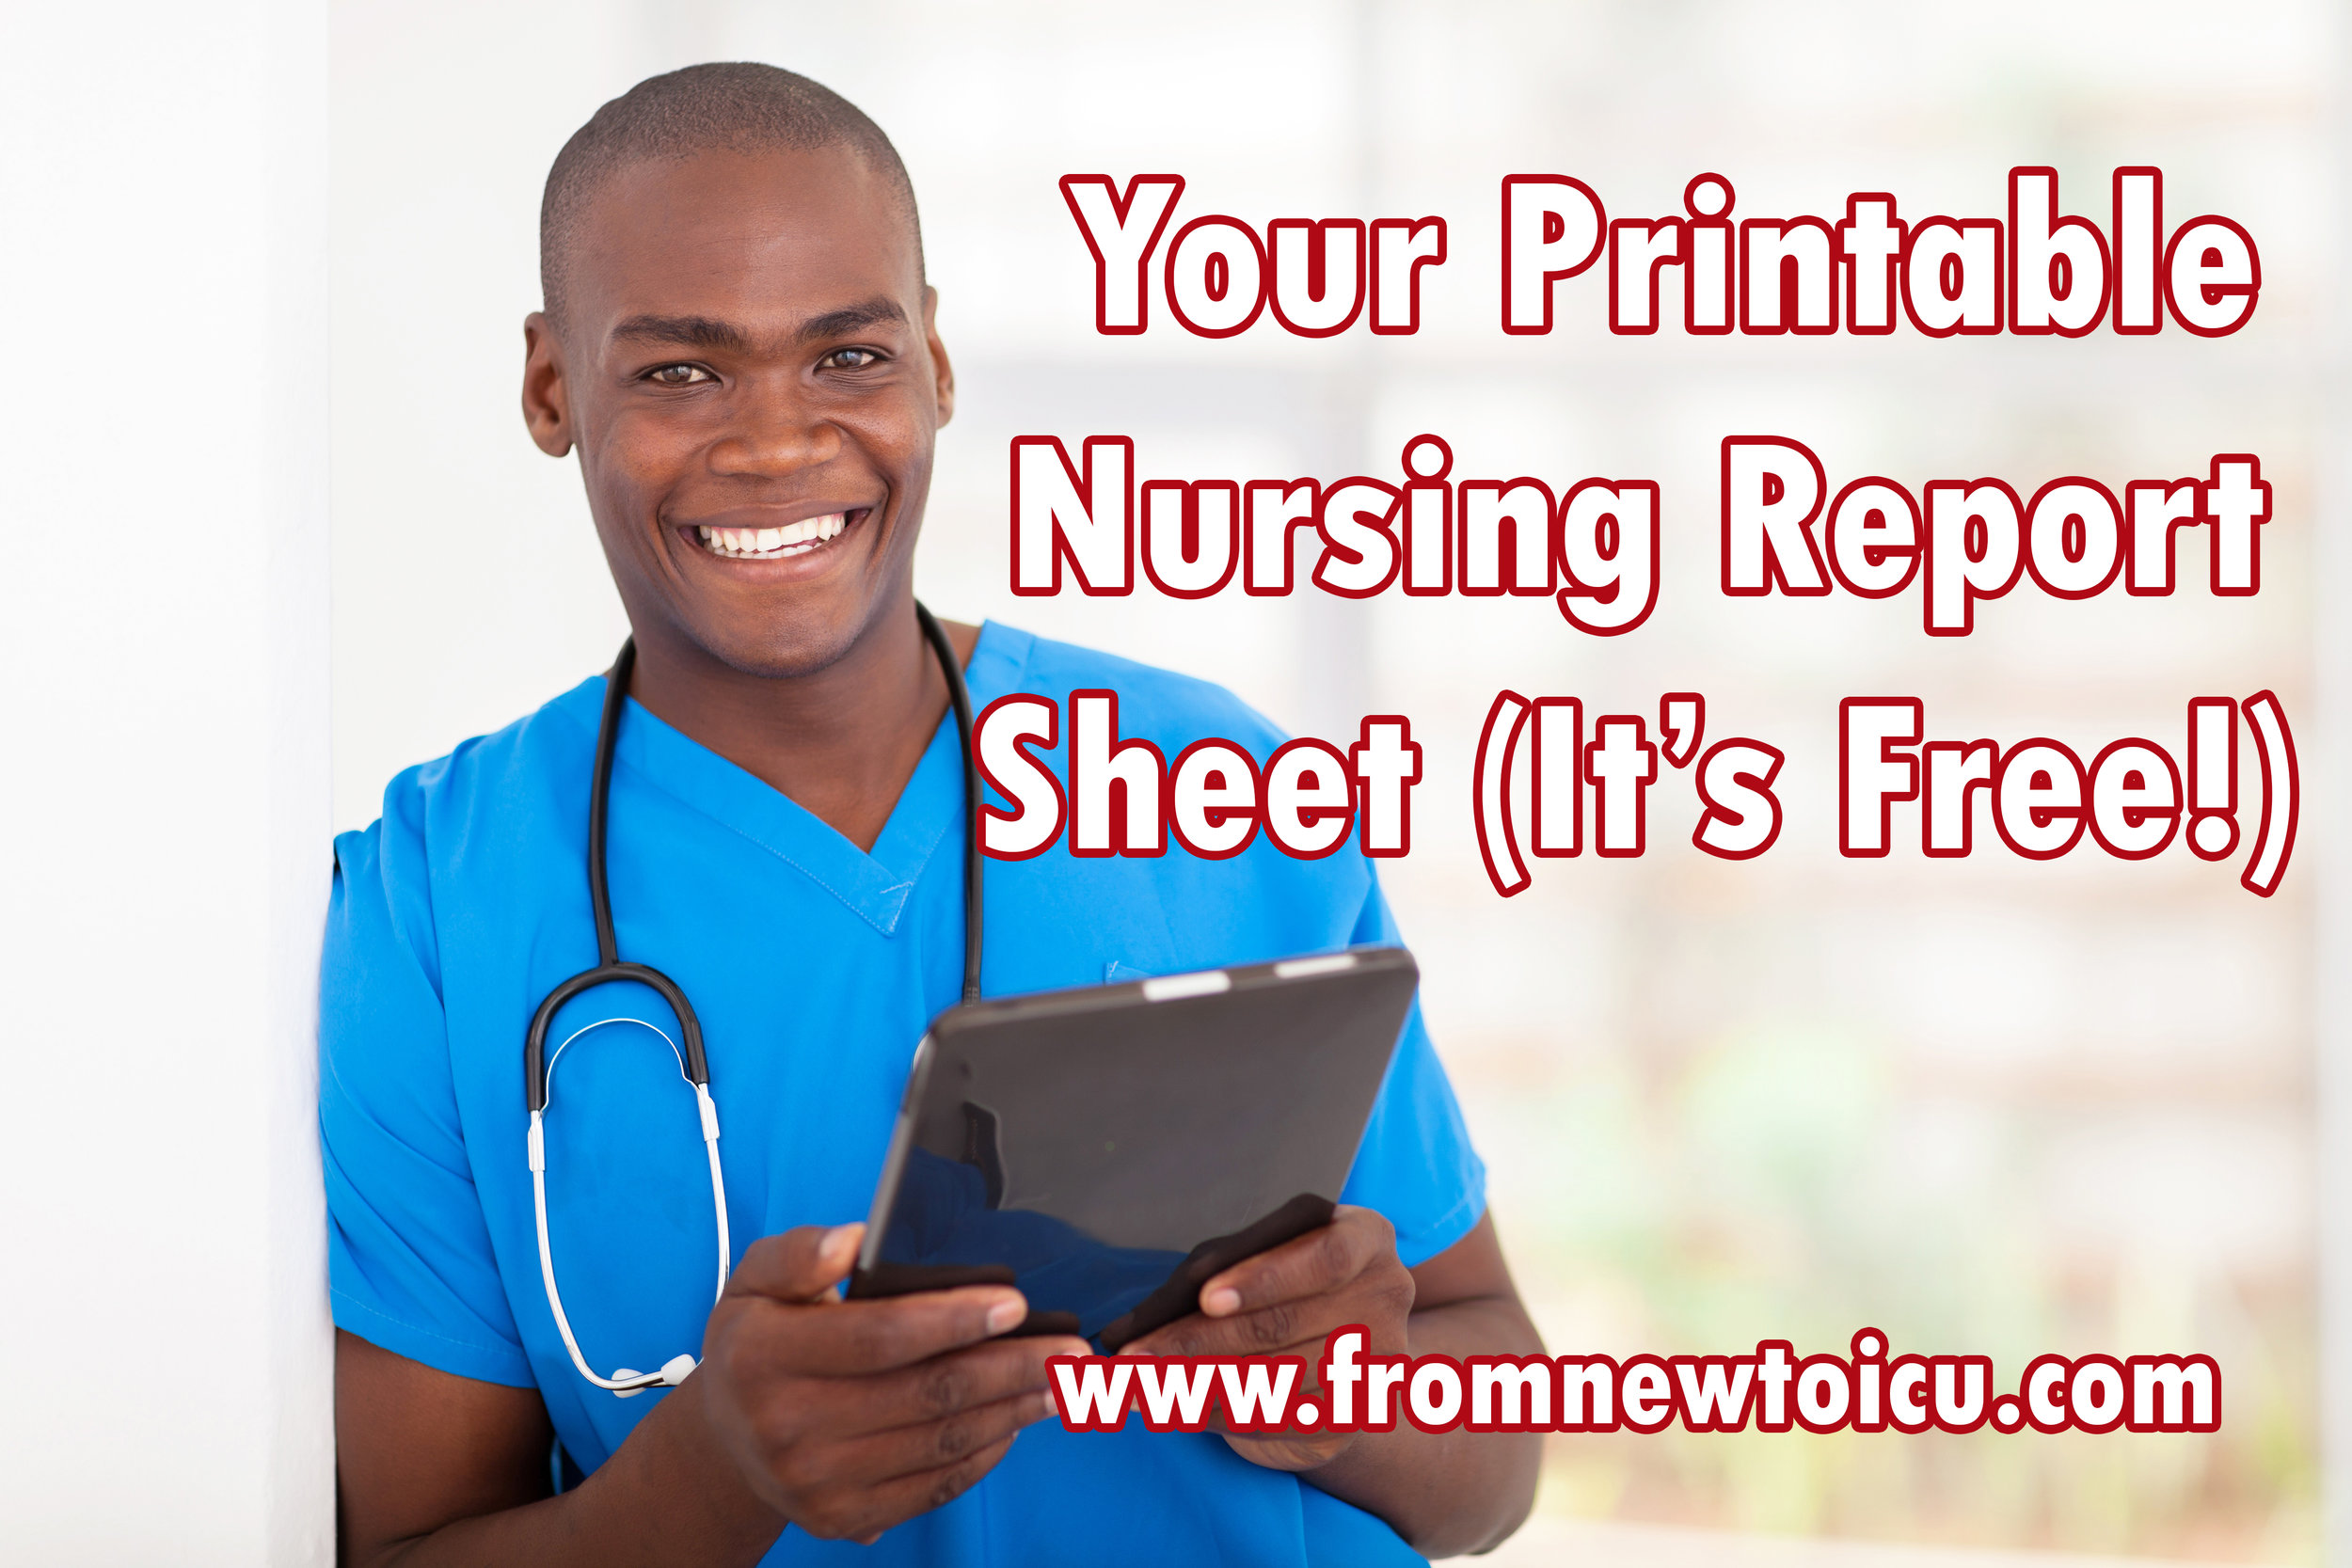 free nursing report sheet